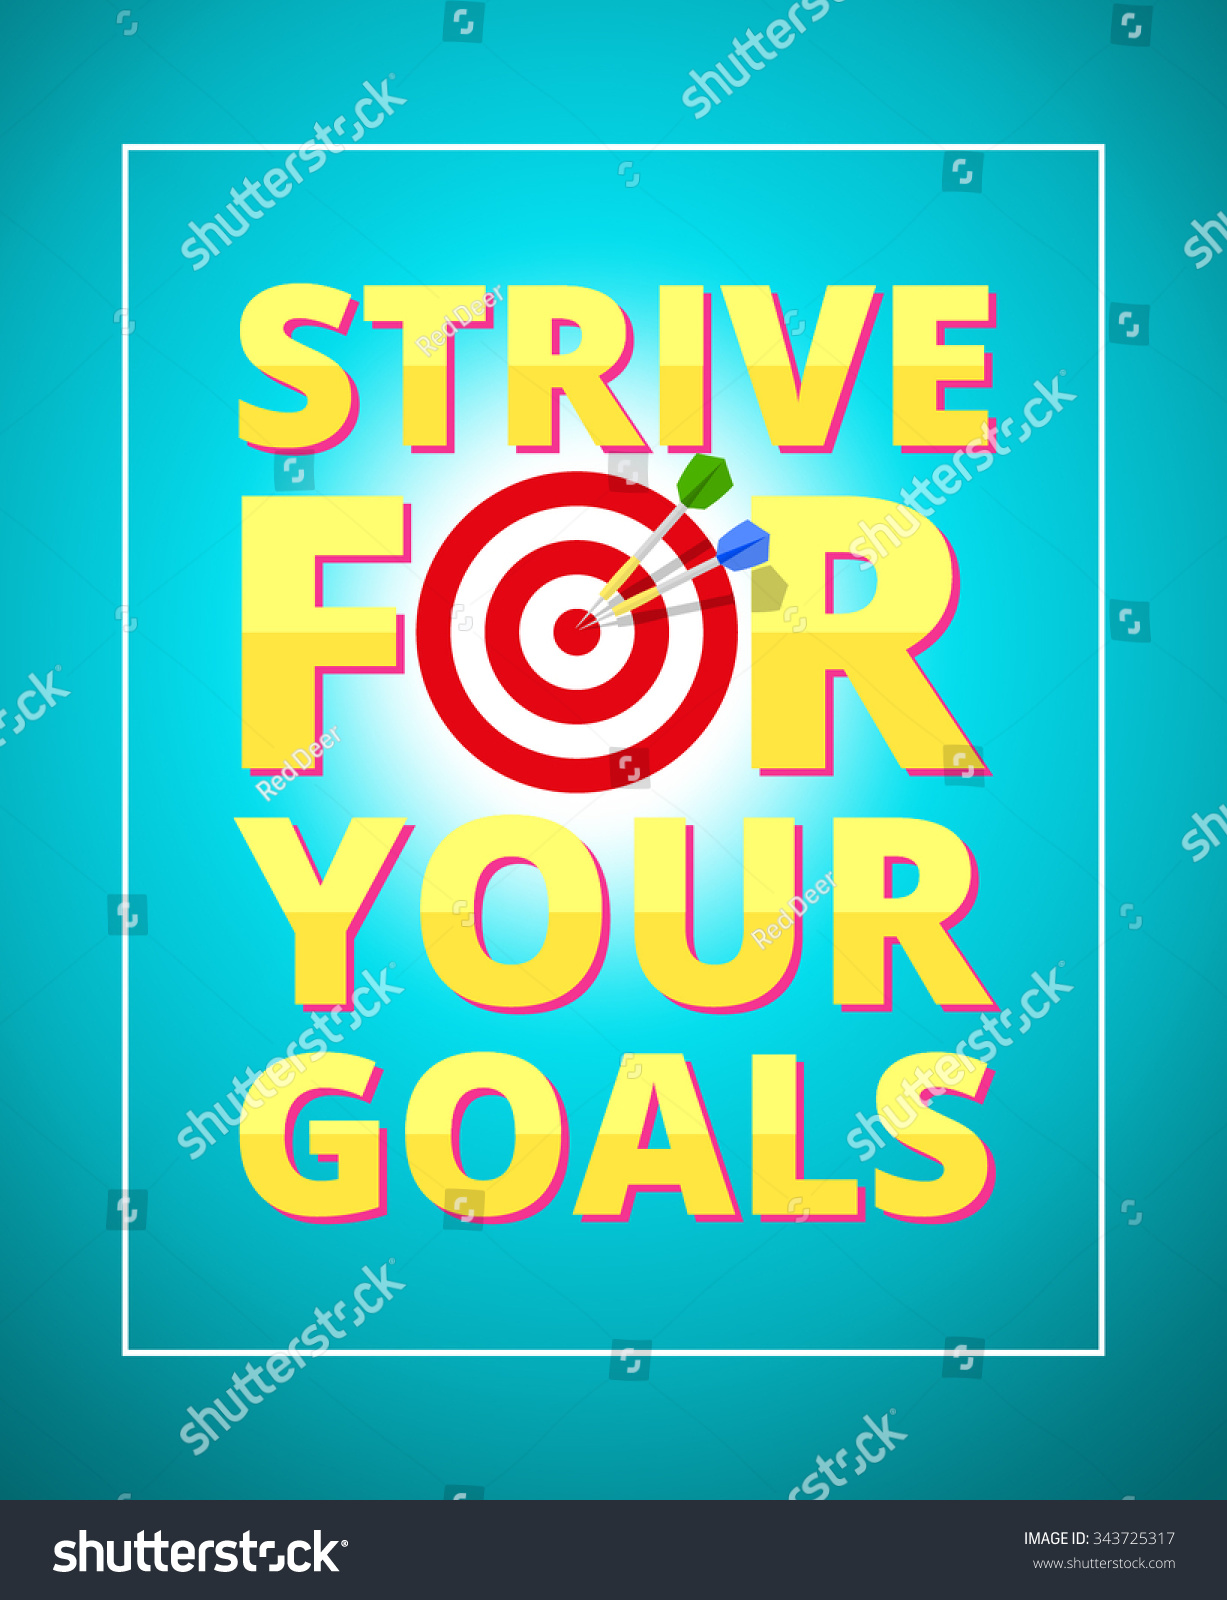 Poster template goal poster template poster template frame poster template goal poster template strive for your goals quote motivation poster template pronofoot35fo Gallery